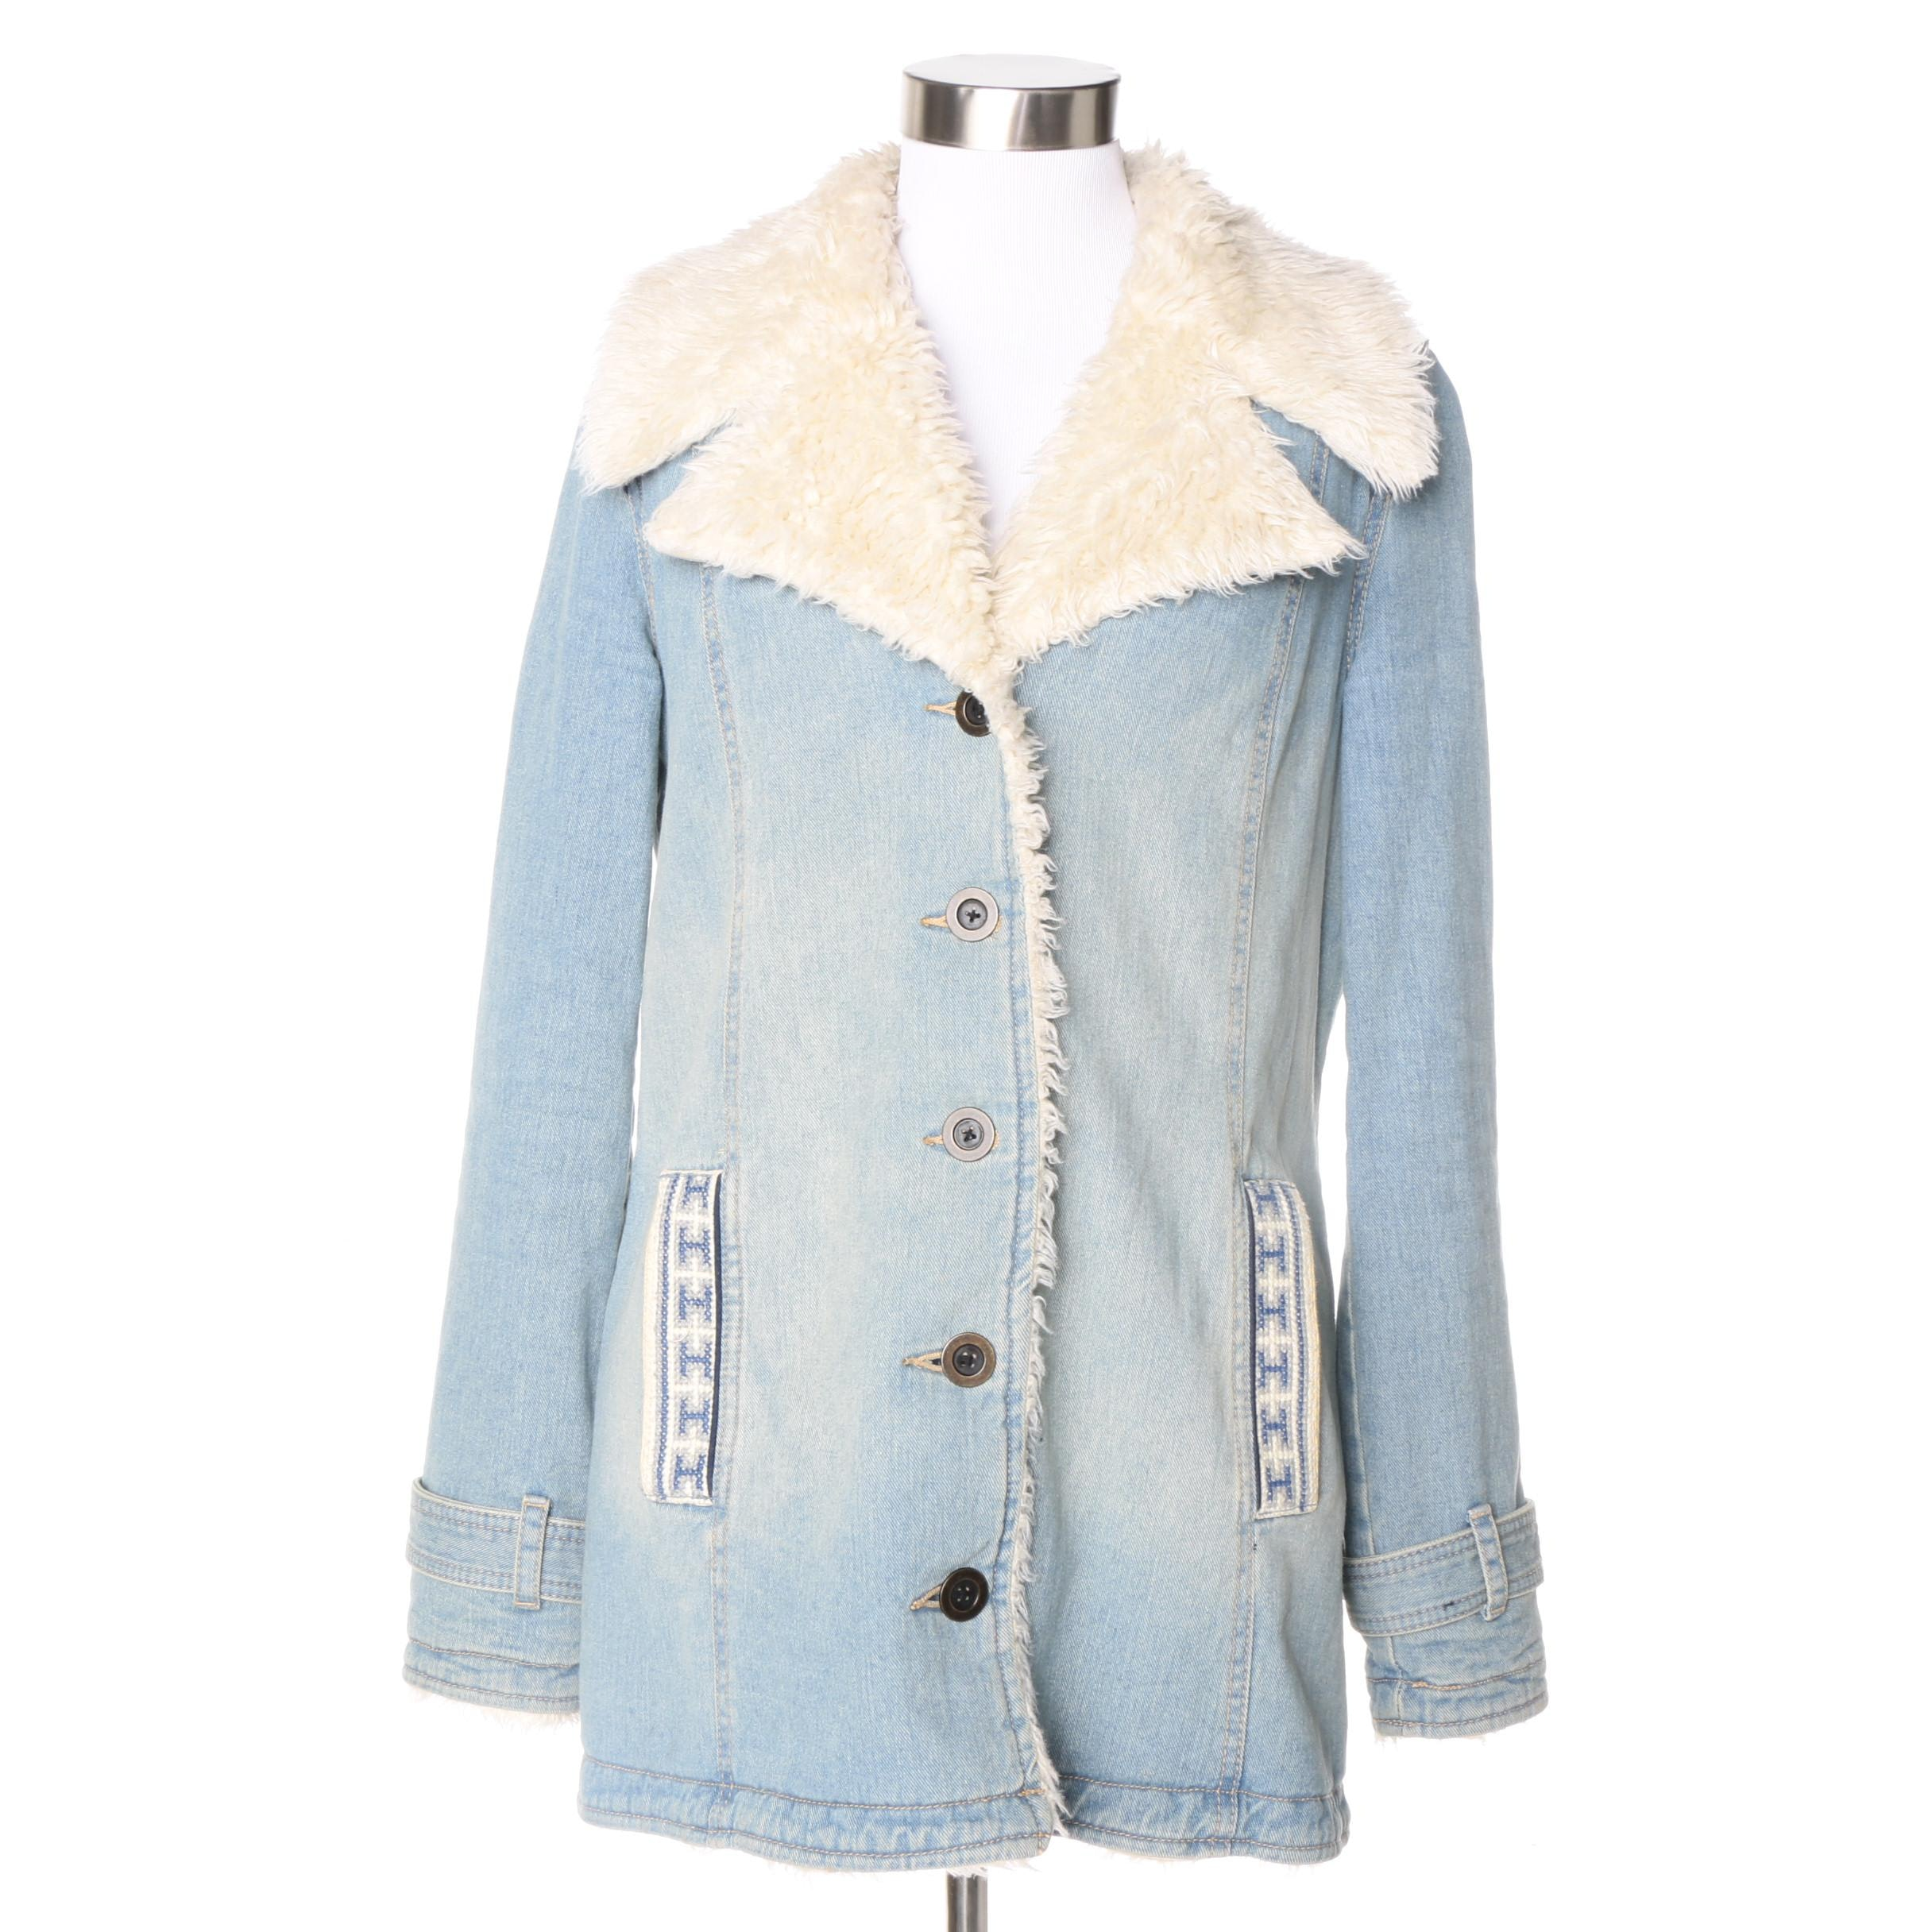 Women's Free People Embroidered Denim Jacket with Faux Fur Lining